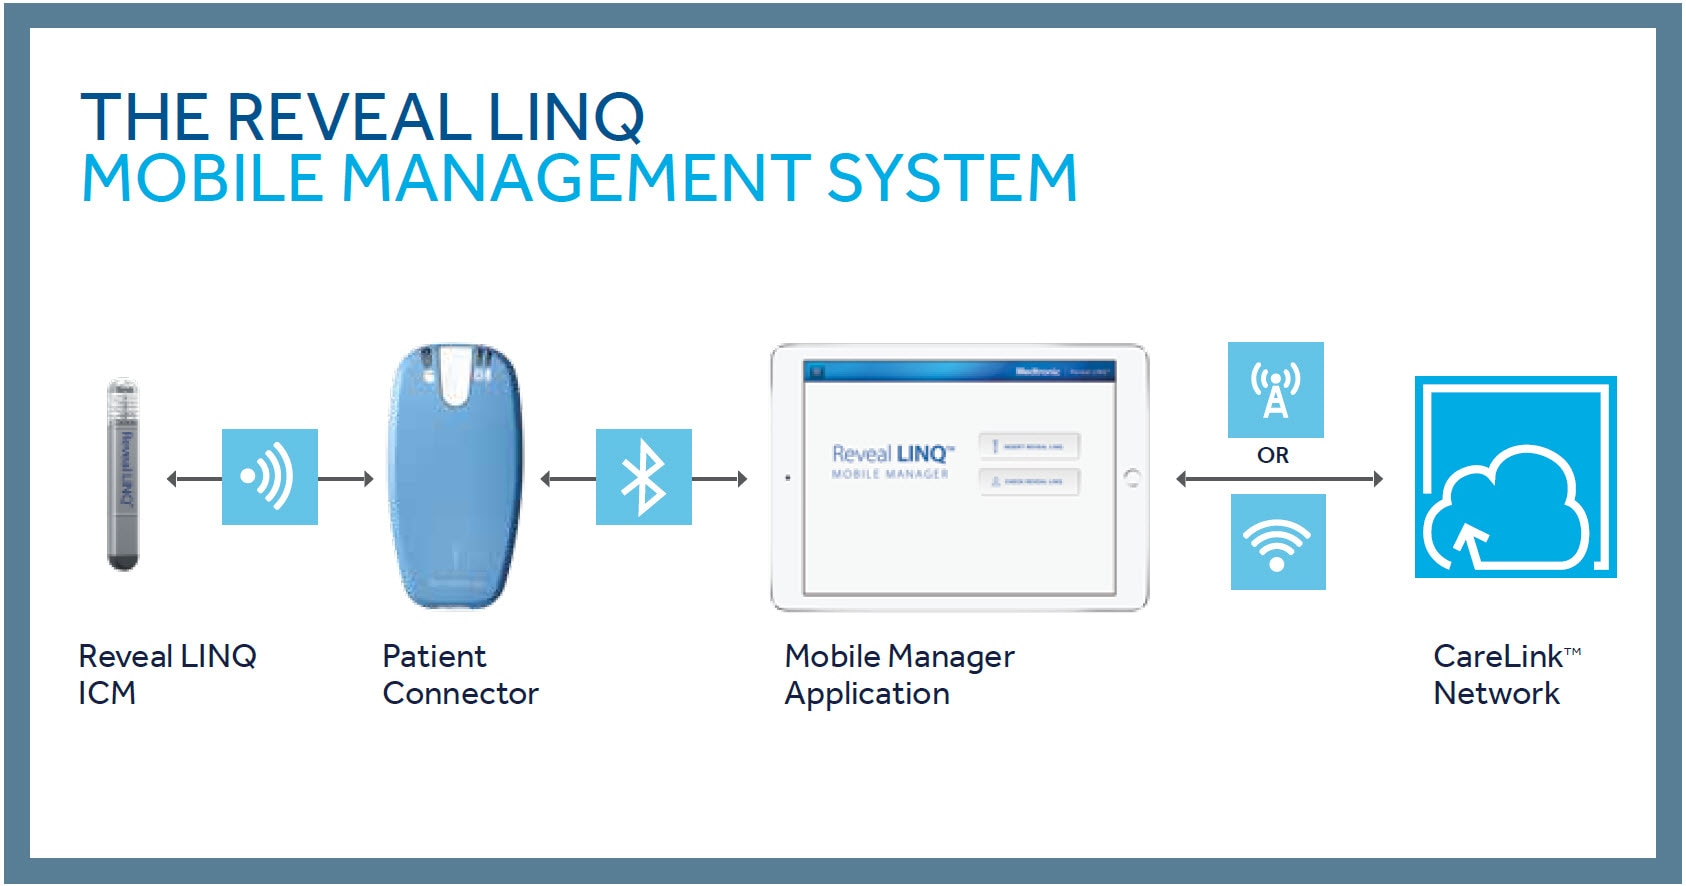 Reveal LINQ Mobile Management System